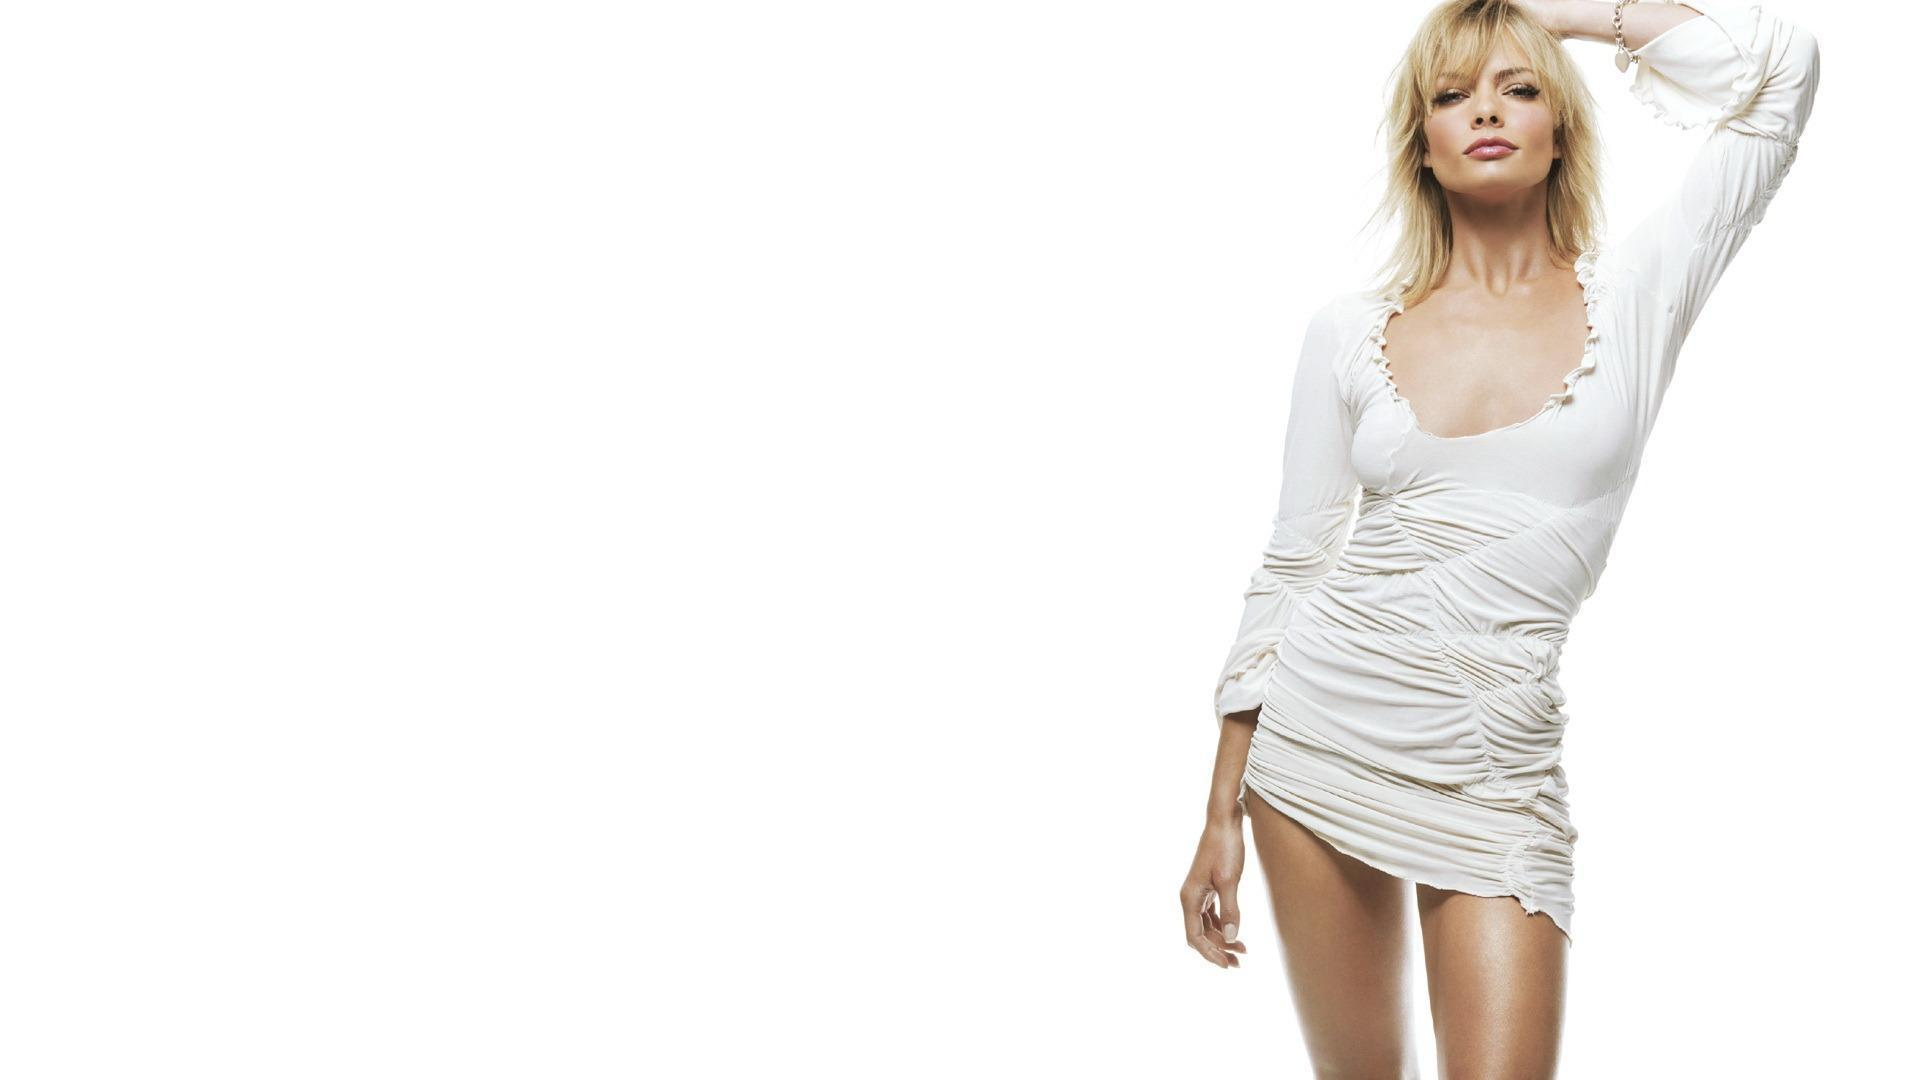 1920x1080 - Jaime Pressly Wallpapers 3